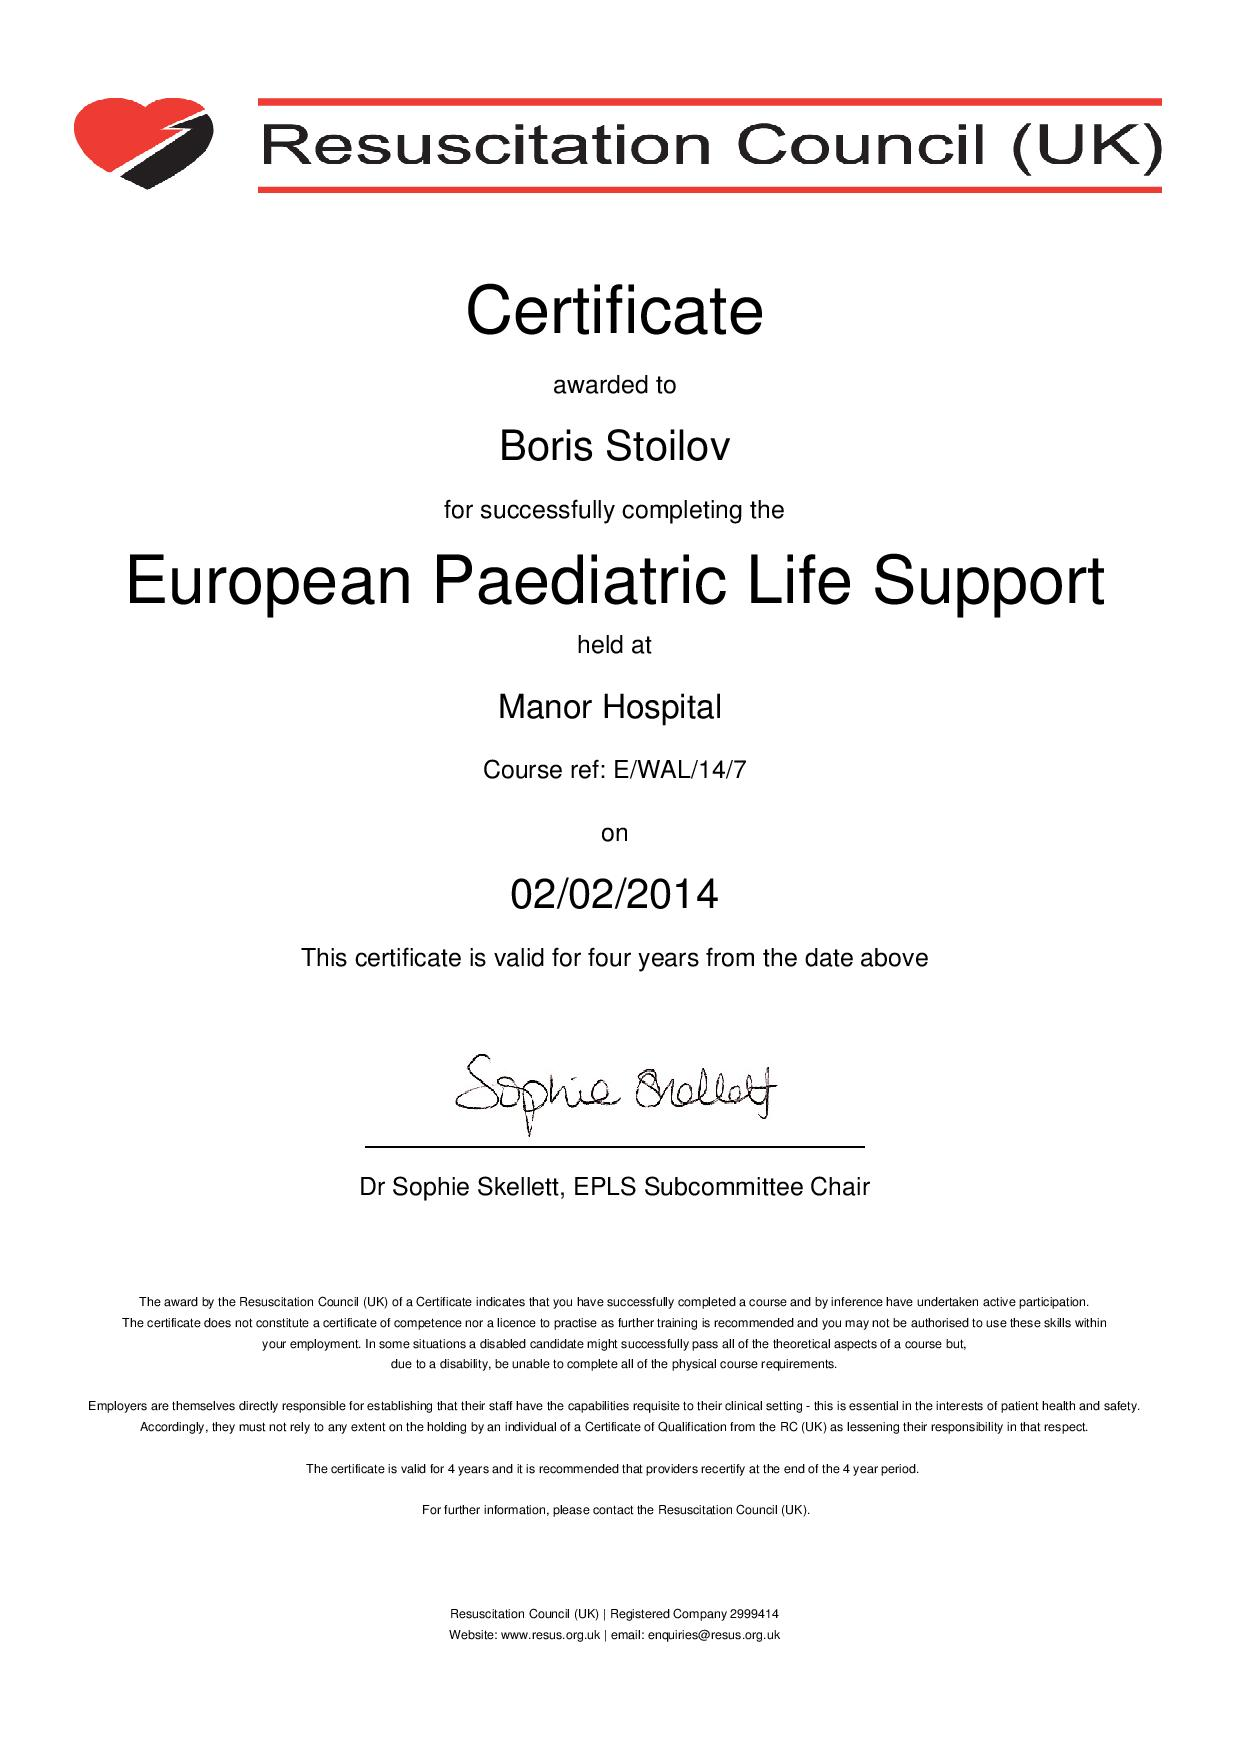 EPLS Course Certificate